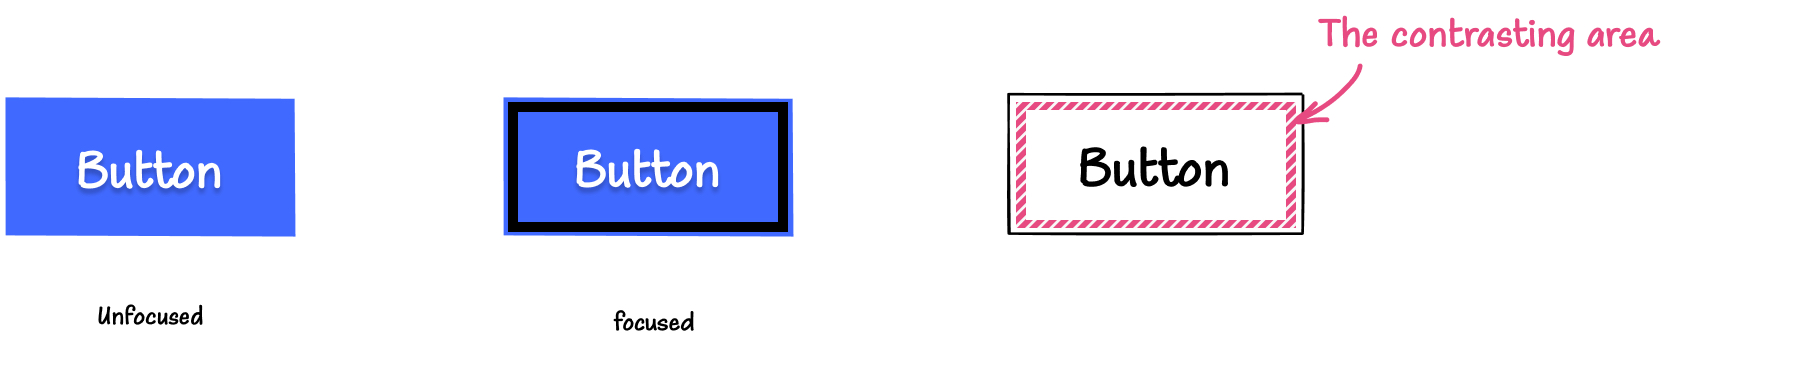 Illustration: On the left is a blue button with a white label in its default, unfocused state. In the middle is the blue button with an inner thick black outline. On the right, is a button with the same outline but with a pattern applied to it, indicating that this patterned area is the contrasting area.